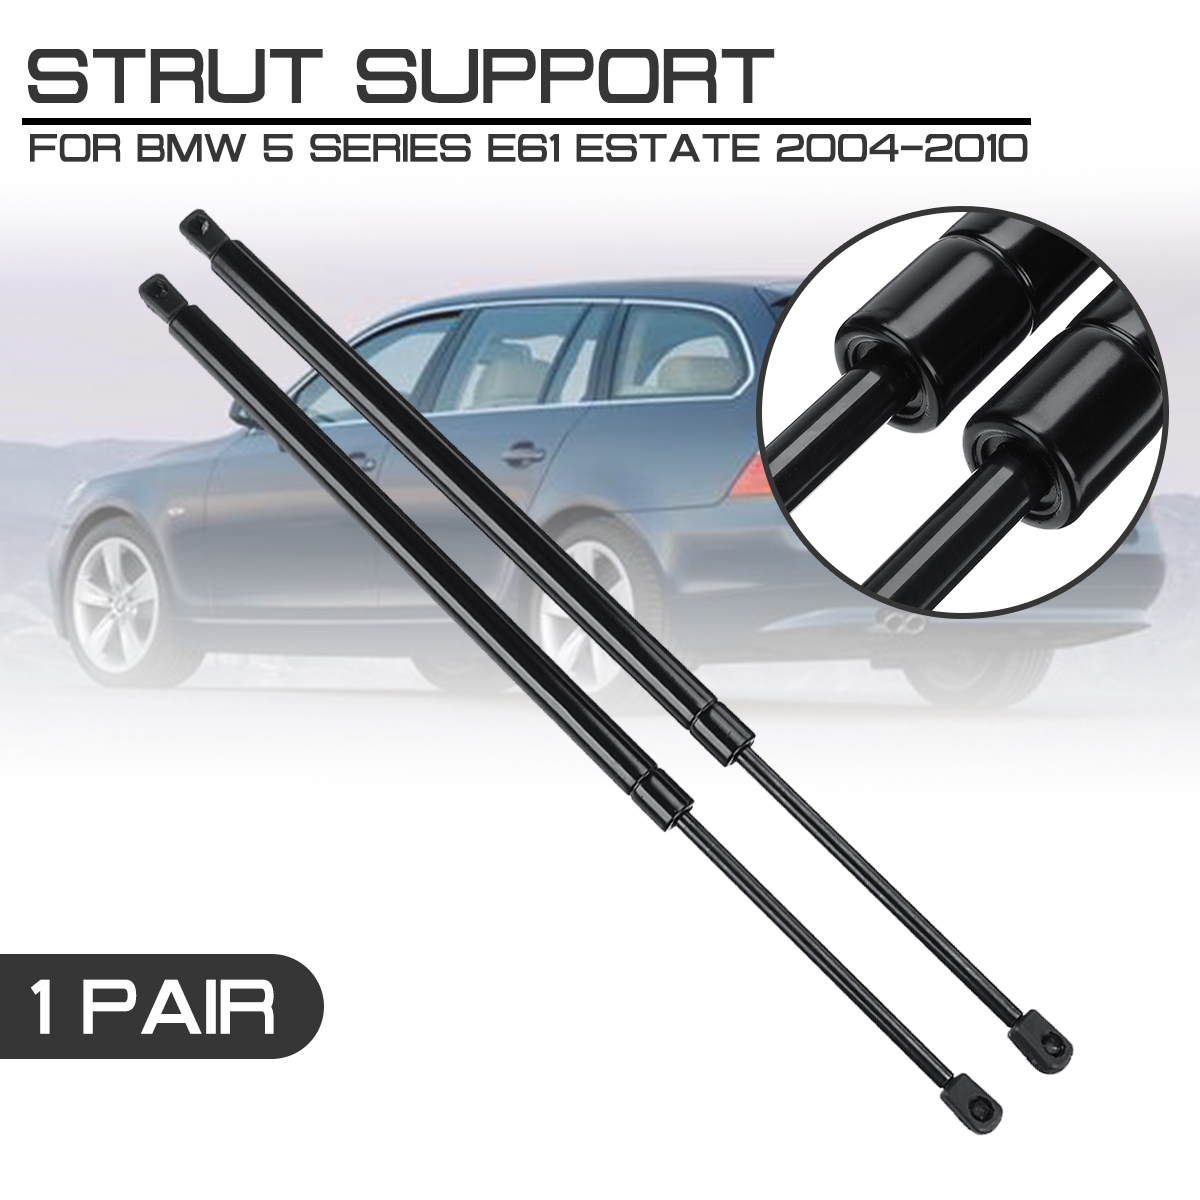 Gas Spring Tailgate Damper Boot for 5 Series Touring E61 520i 523i 525i 525xi 520d 525d 530d Estate Year 2004-2010